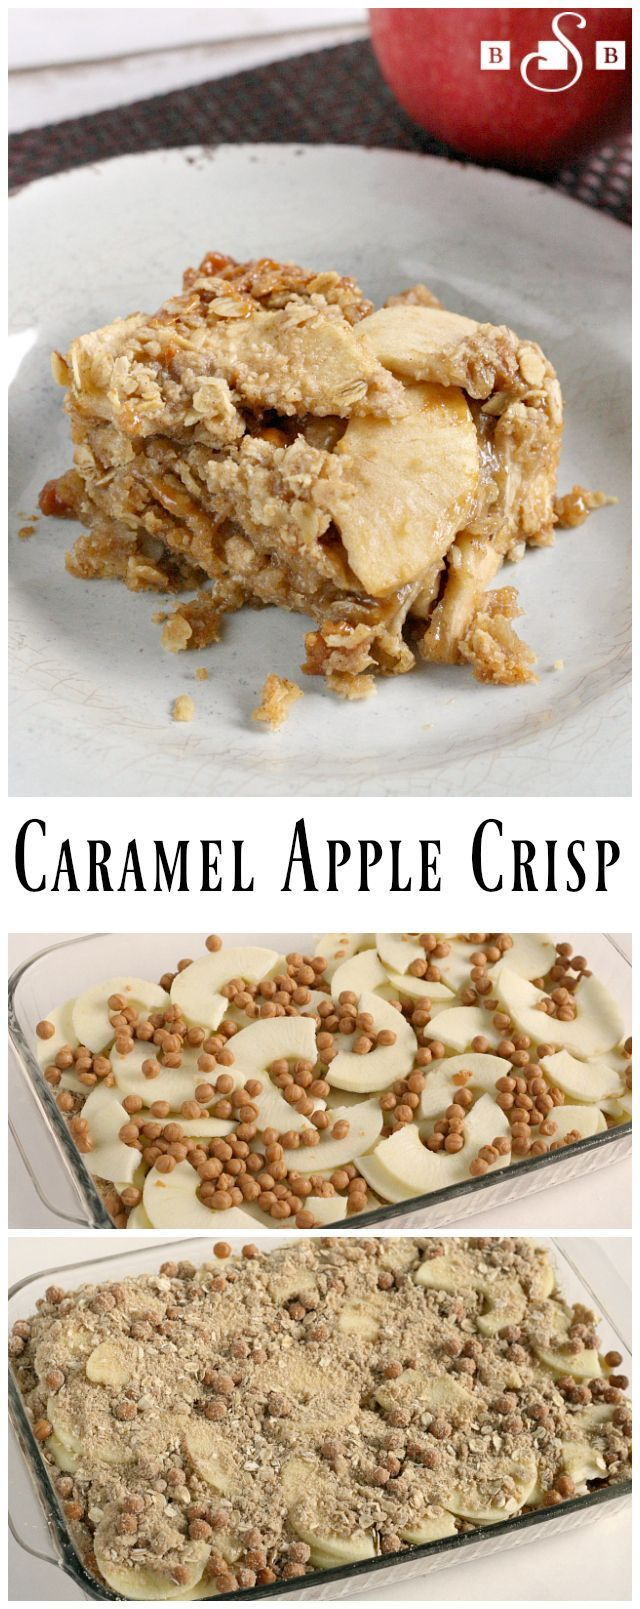 Caramel Apple Crisp - Enjoy the warm fall flavors of this twist on an old favorite! Butter With a Side of Bread #InspiredGathering AD